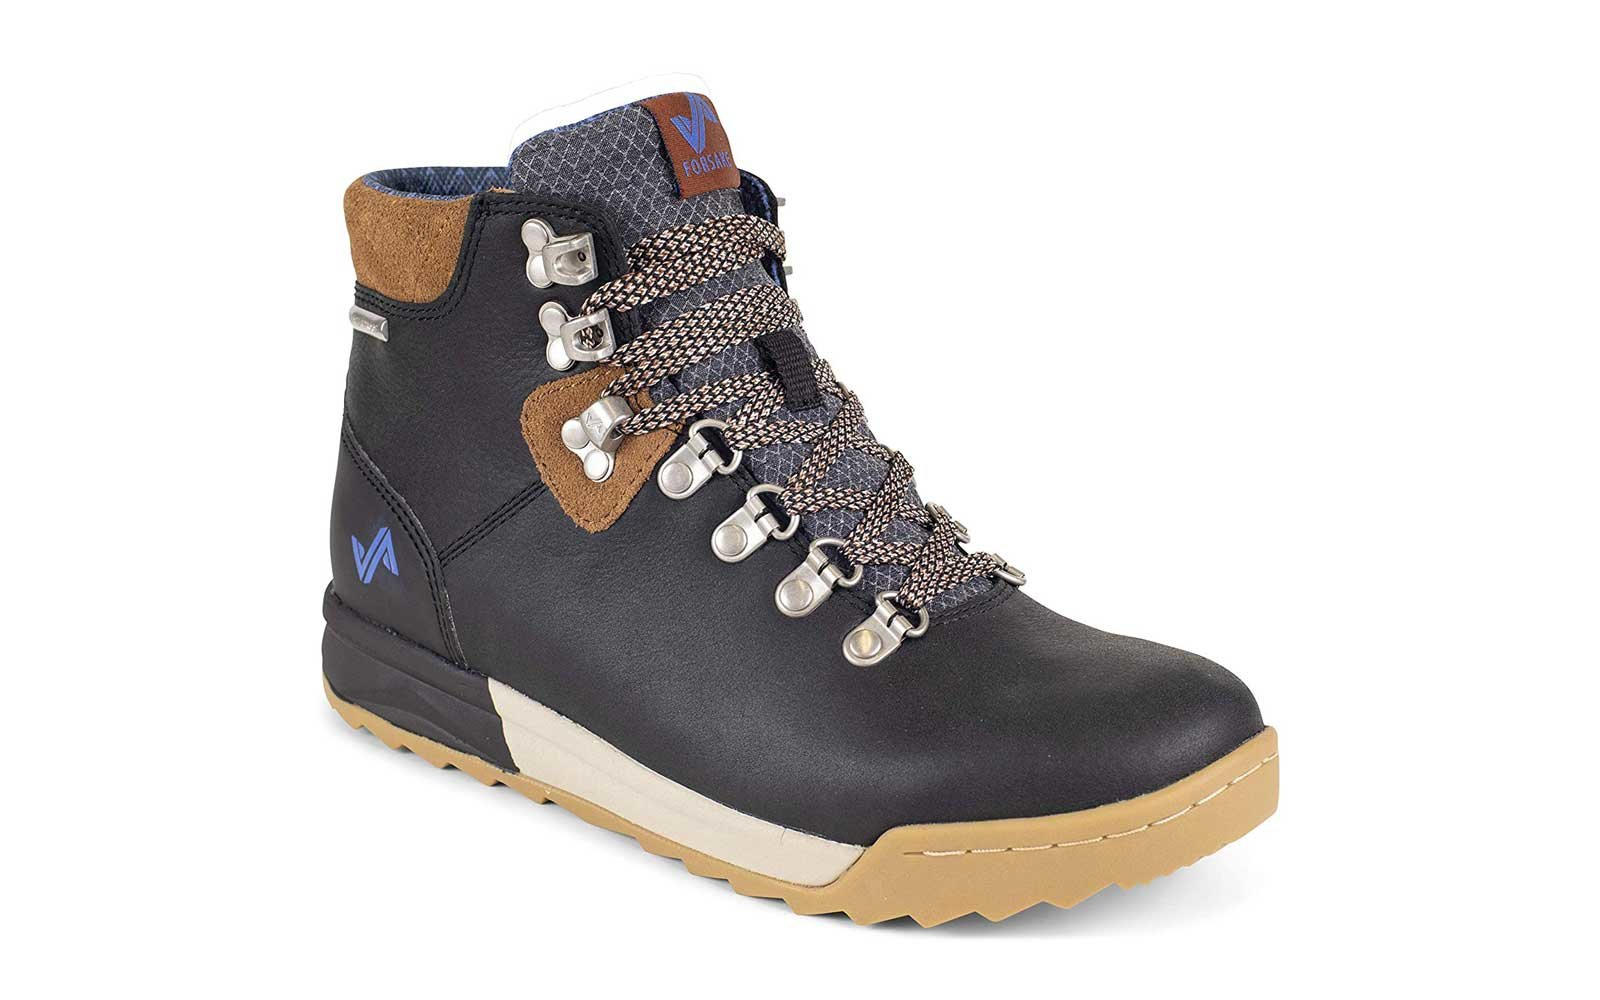 cute hiking shoes and boots for women forsake